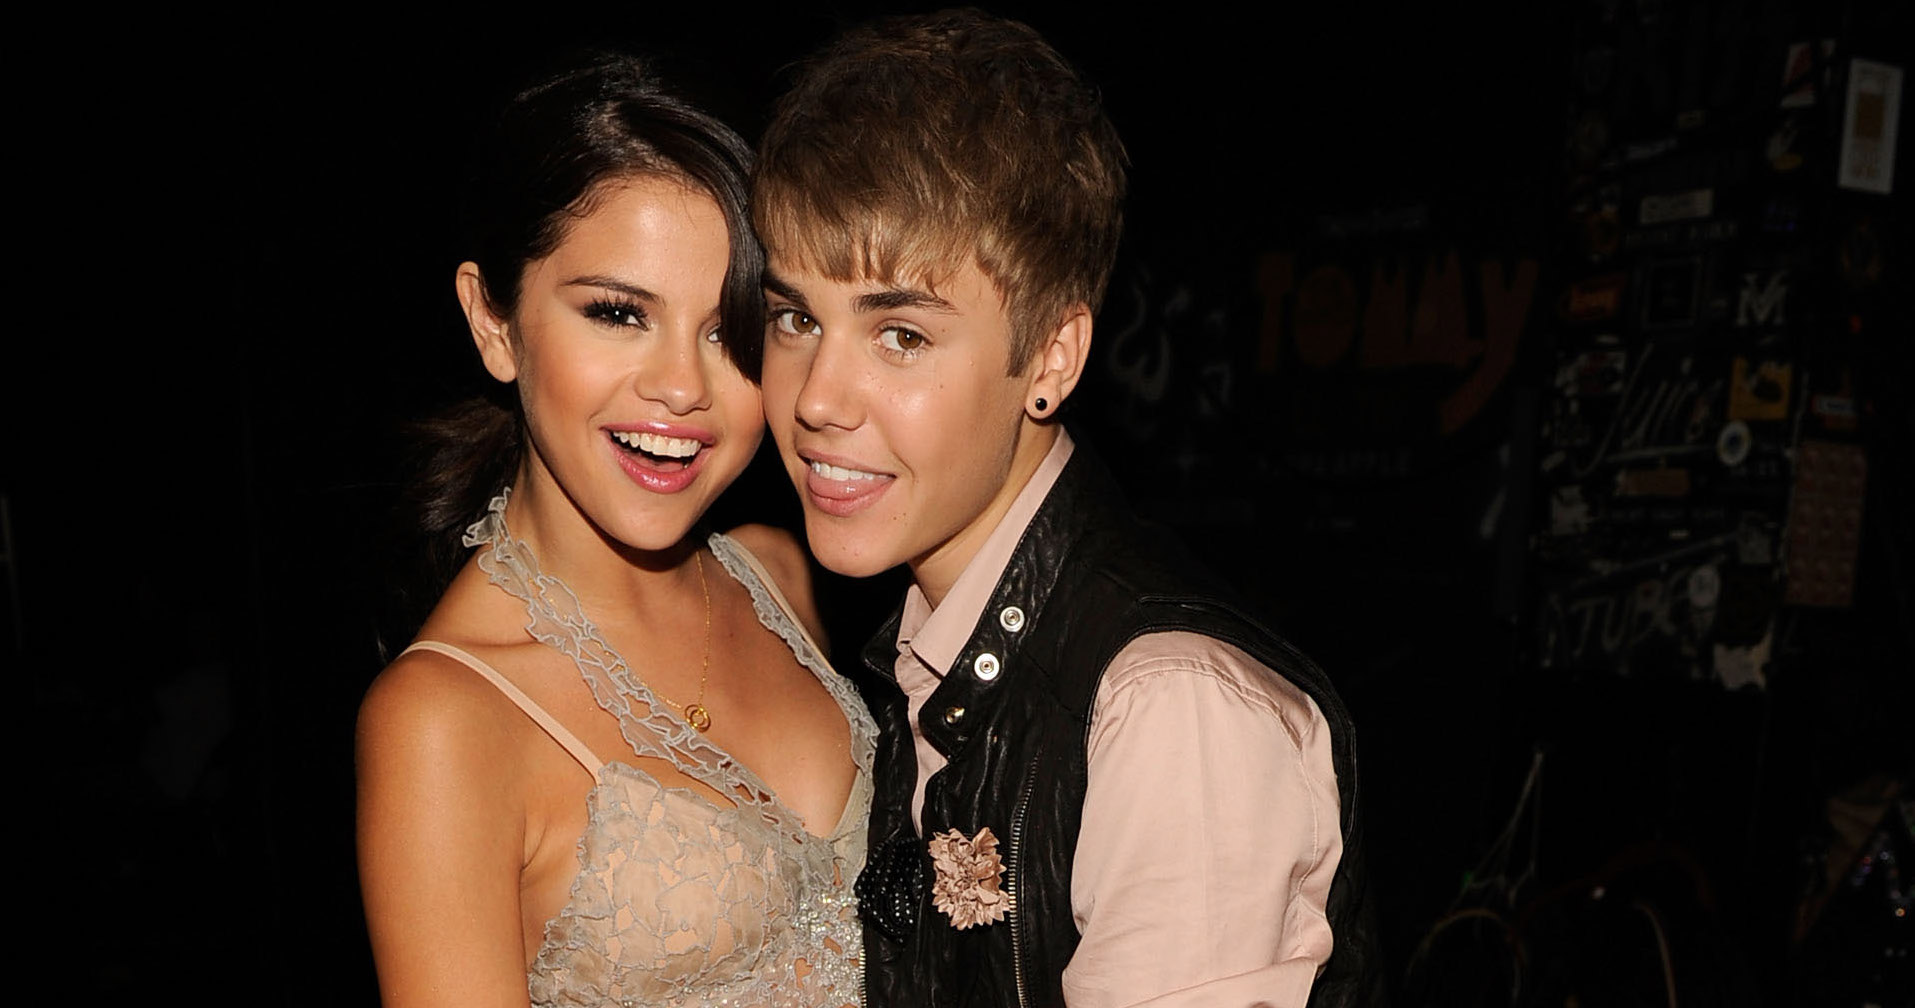 Have We Reached the End of Our 3 600 Word Jelena Timeline